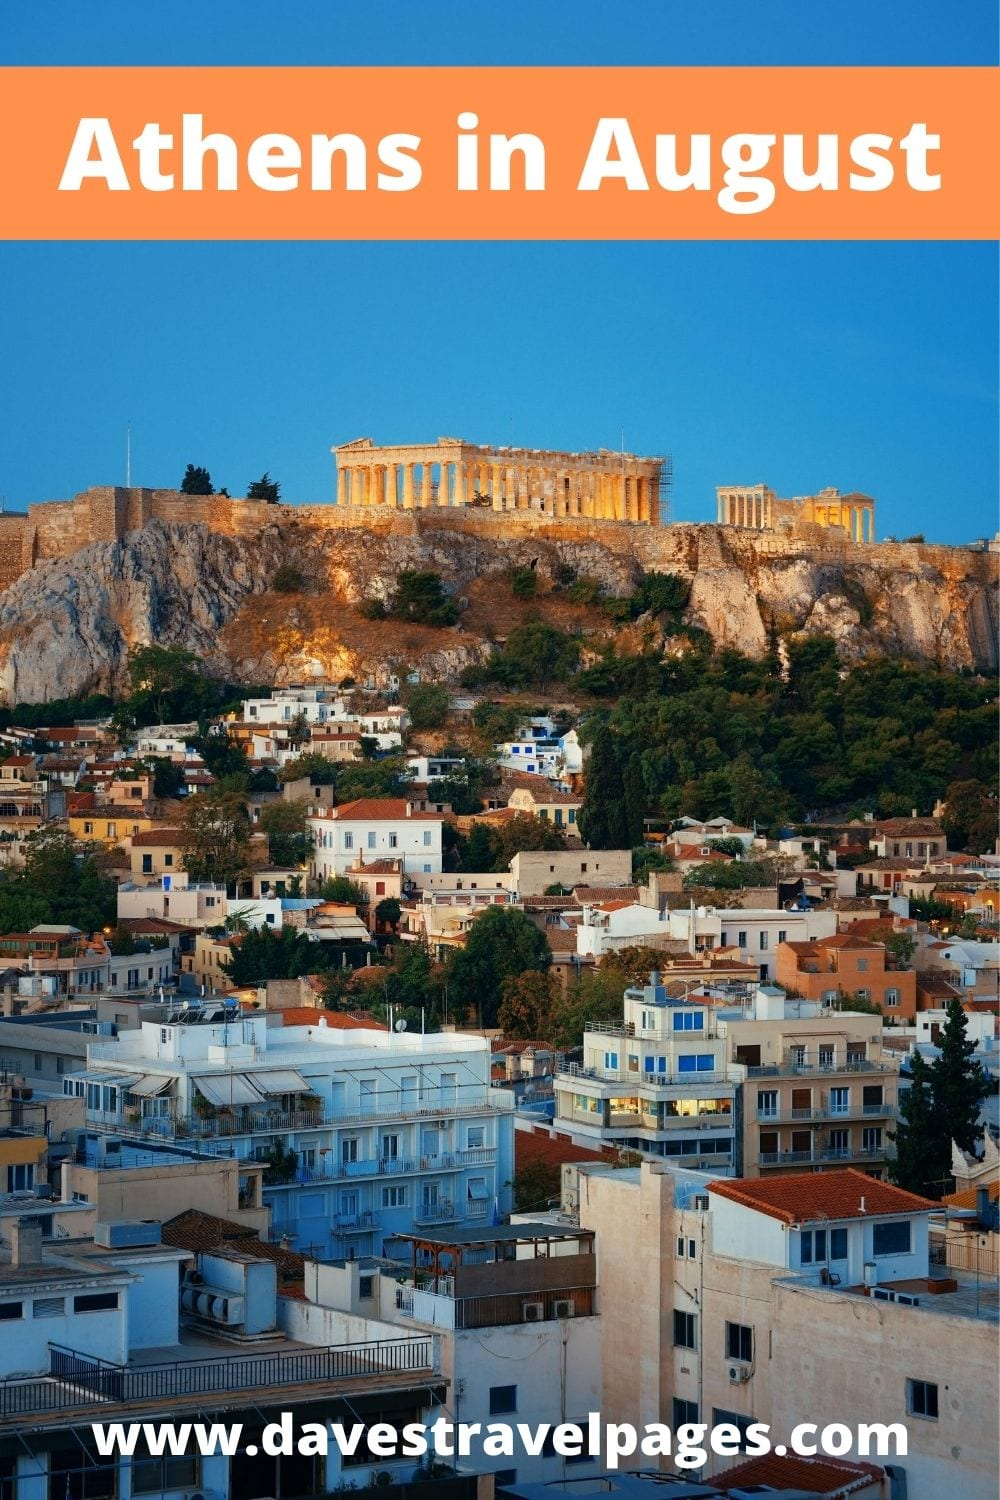 Reasons to visit Athens in August